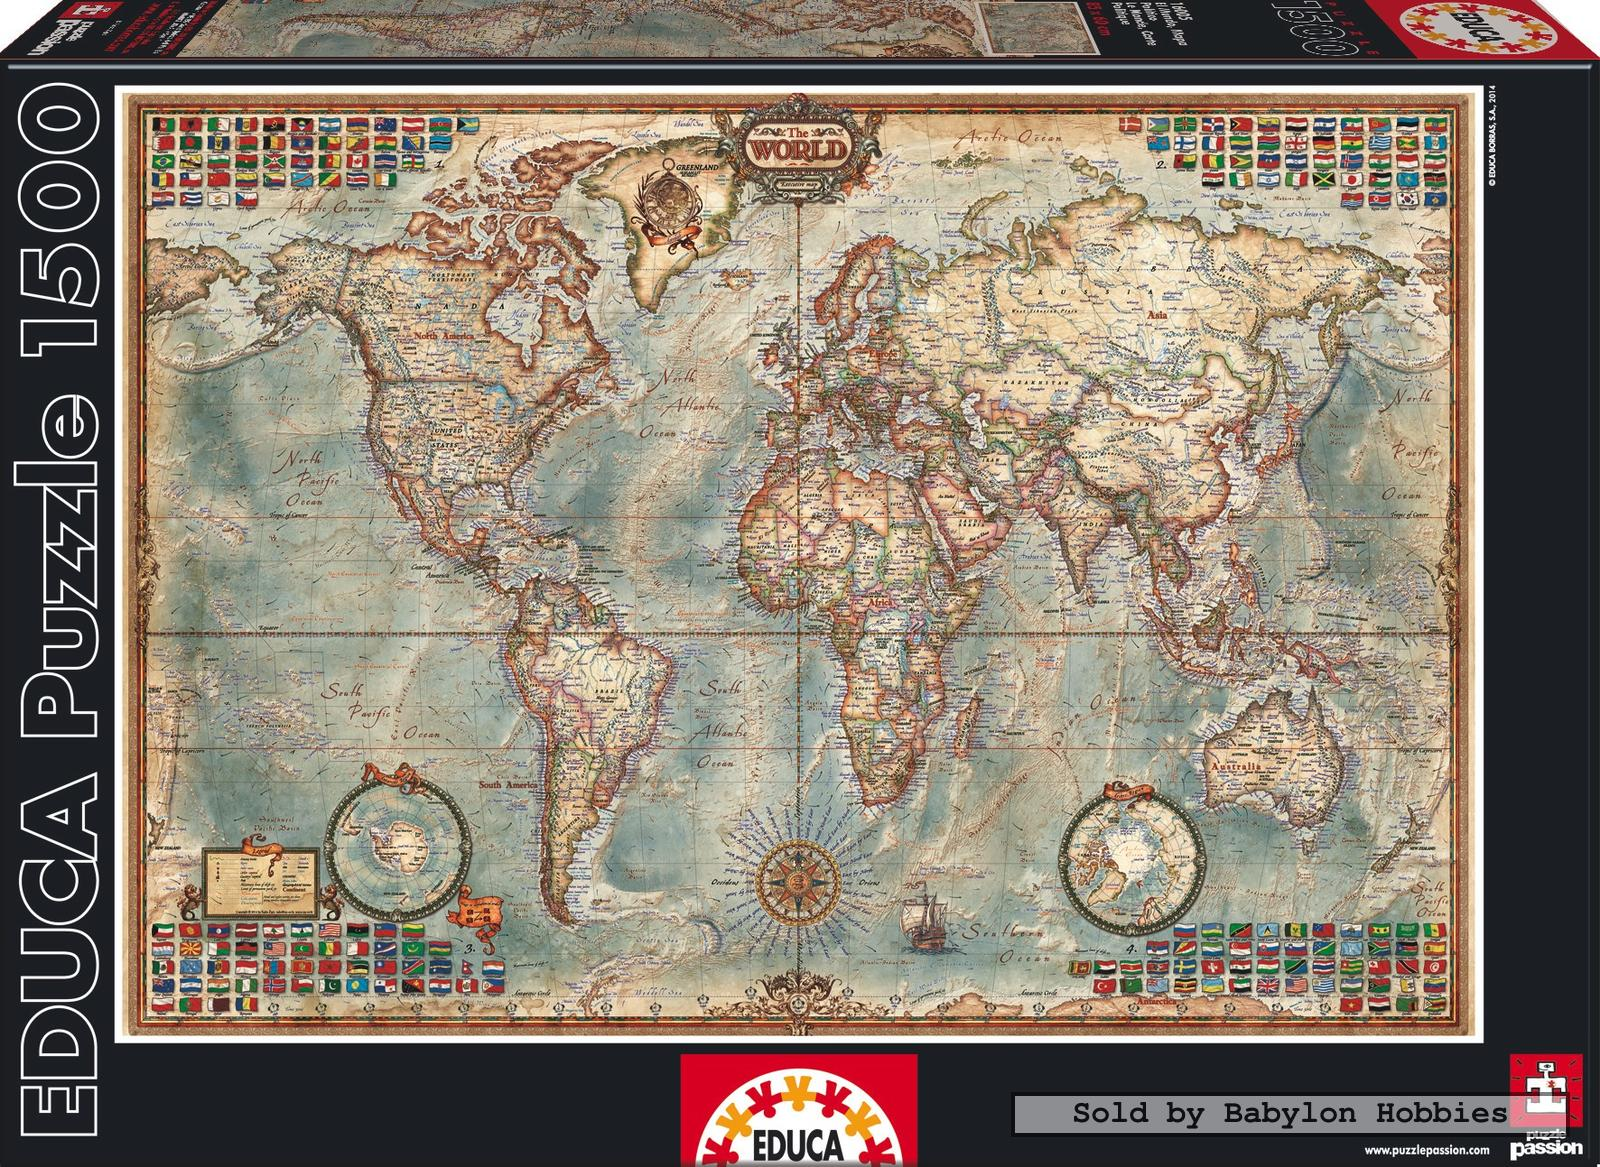 1500 pcs political map of the world by educa babylon hobbies 1500 pcs political map of the world by educa babylon hobbies puzzles gumiabroncs Images